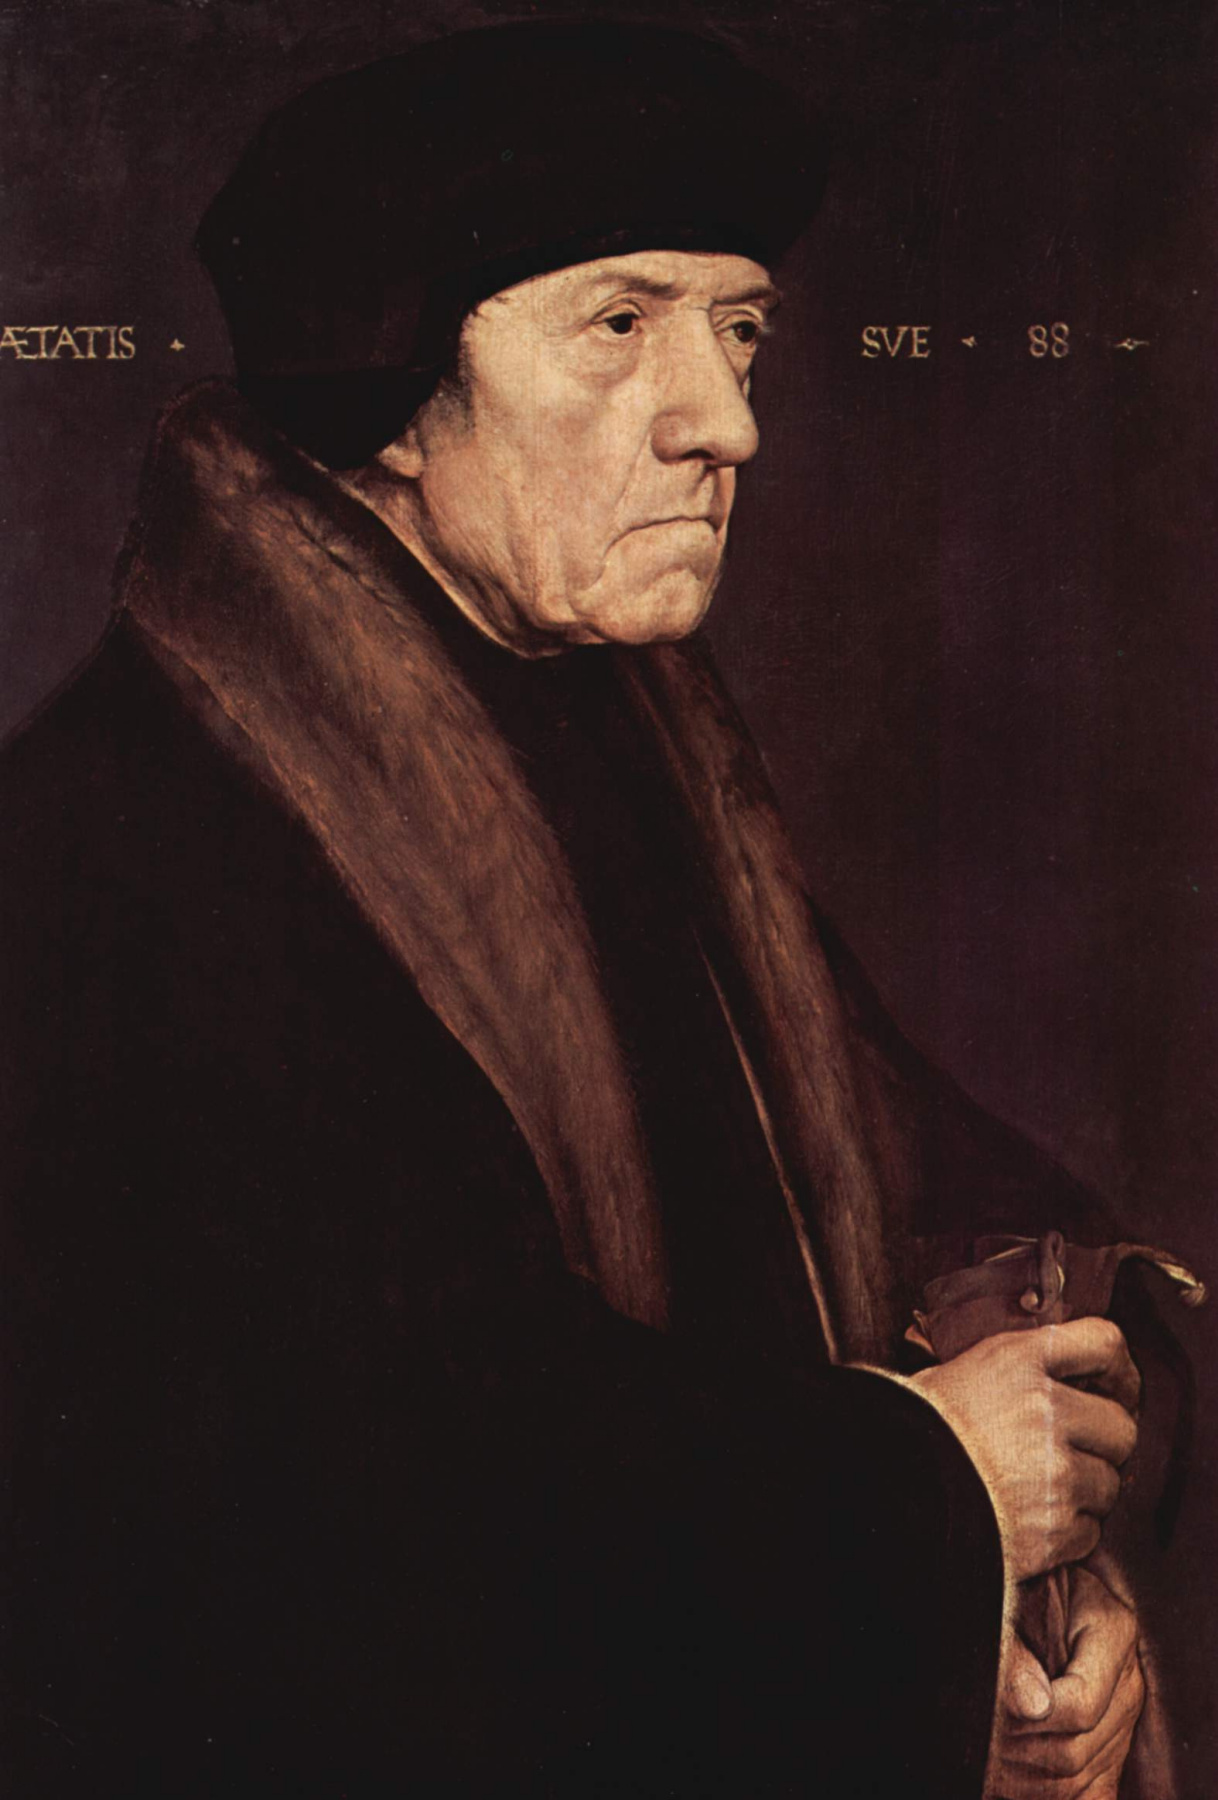 Hans Holbein the Younger. Portrait of Dr. John Chambers, Medical Officer of the English King Henry VIII